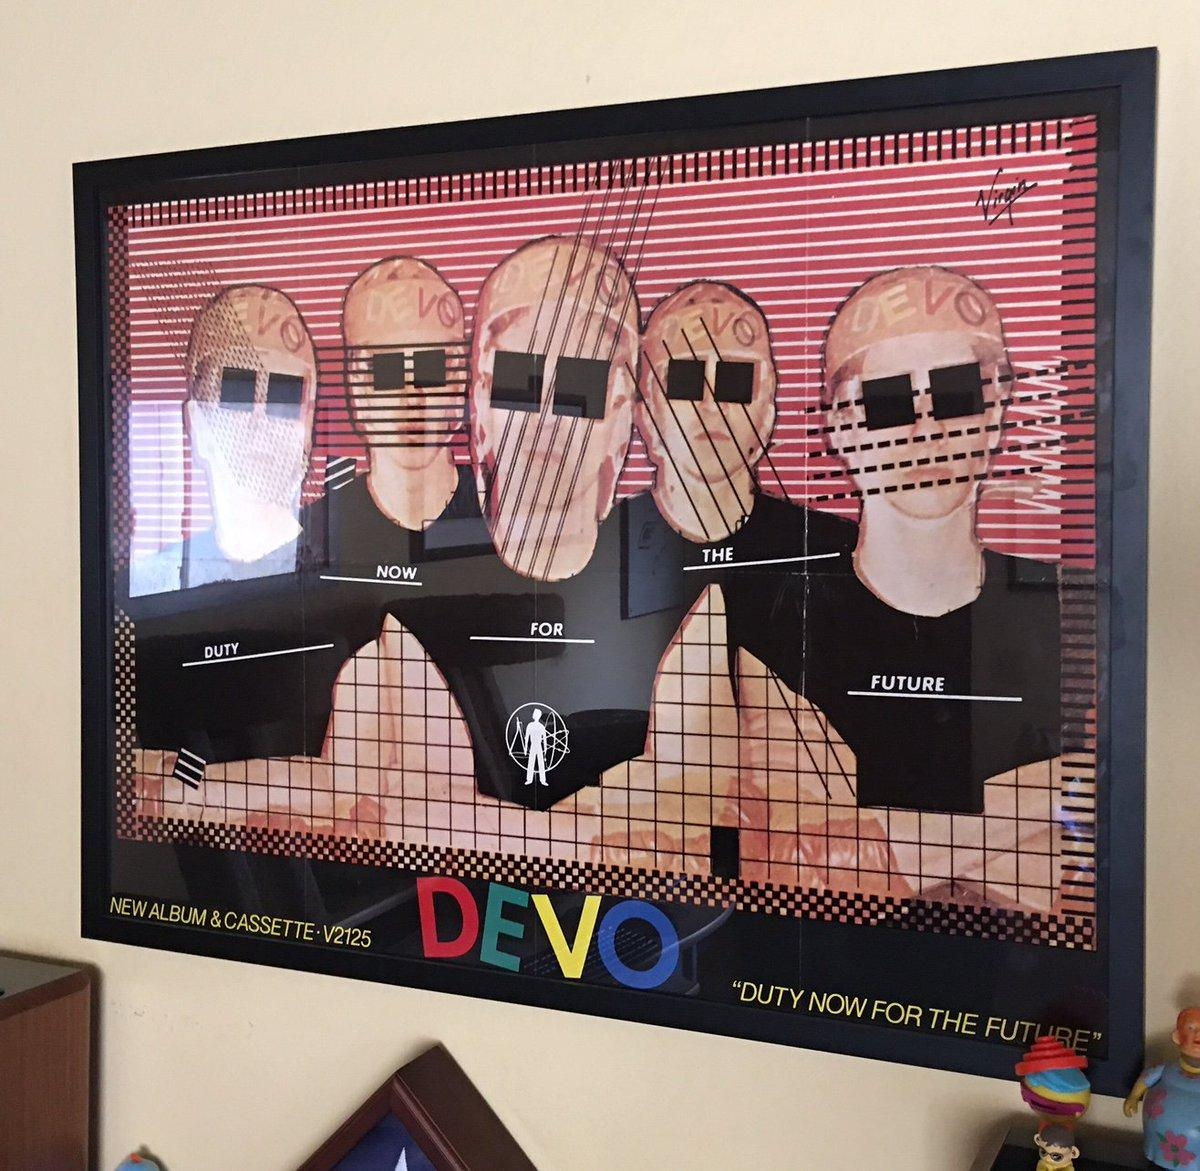 Album Cover Prints / Group Prints You Have On Your Wall | Steve Regarding Album Cover Wall Art (View 13 of 20)